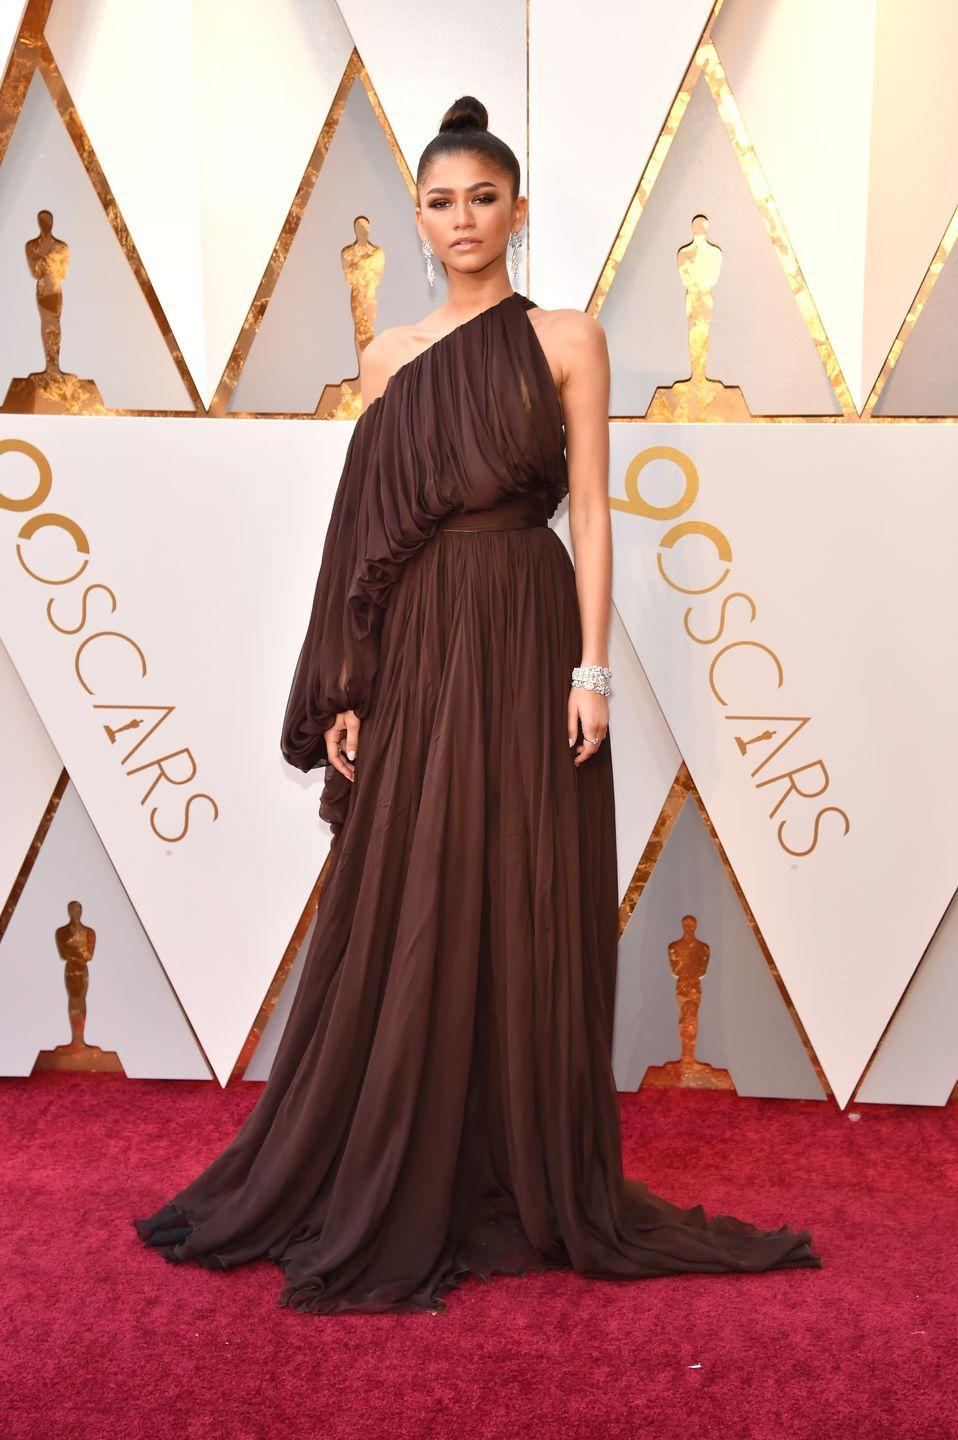 <p>For the main 2018 Oscars red carpet, she donned this chocolate Giambattista Valli Couture gown.</p>